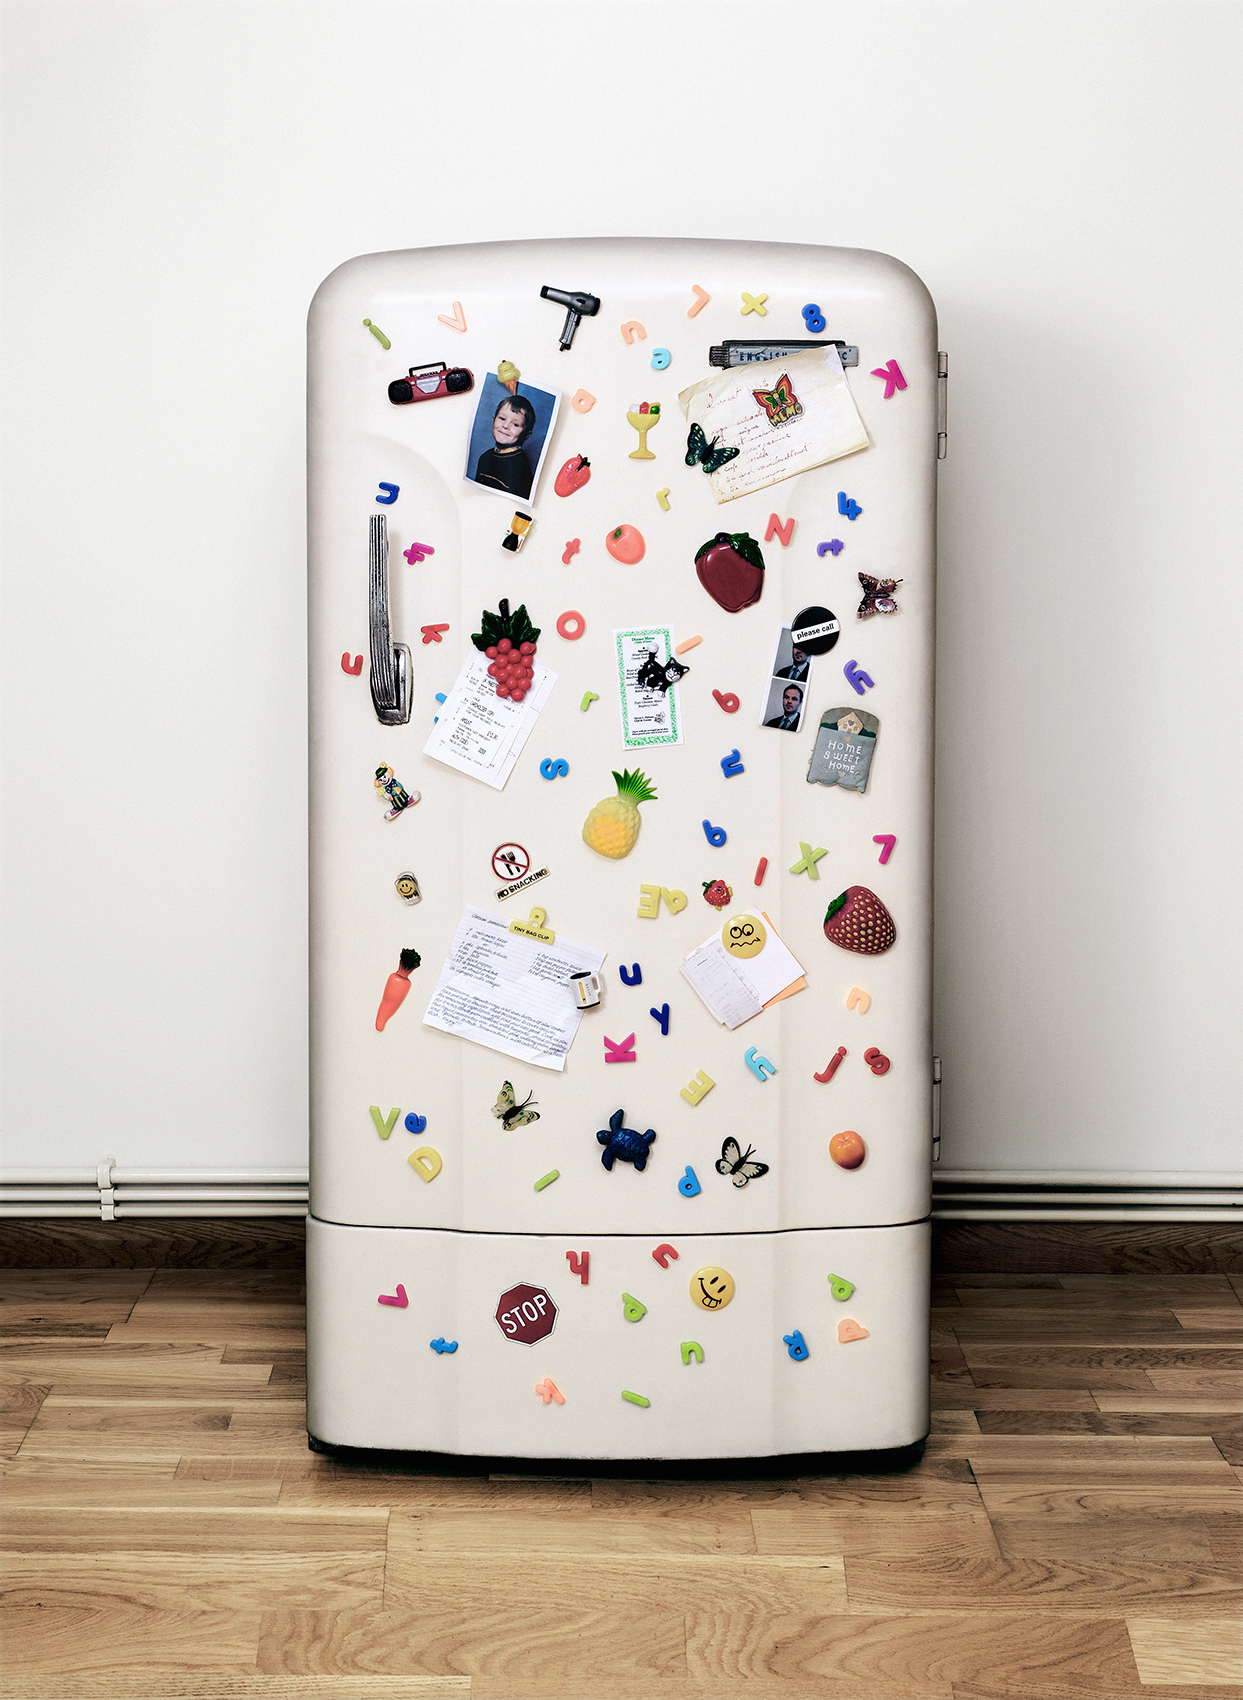 Refrigerator covered in magnets, notes, and photographs